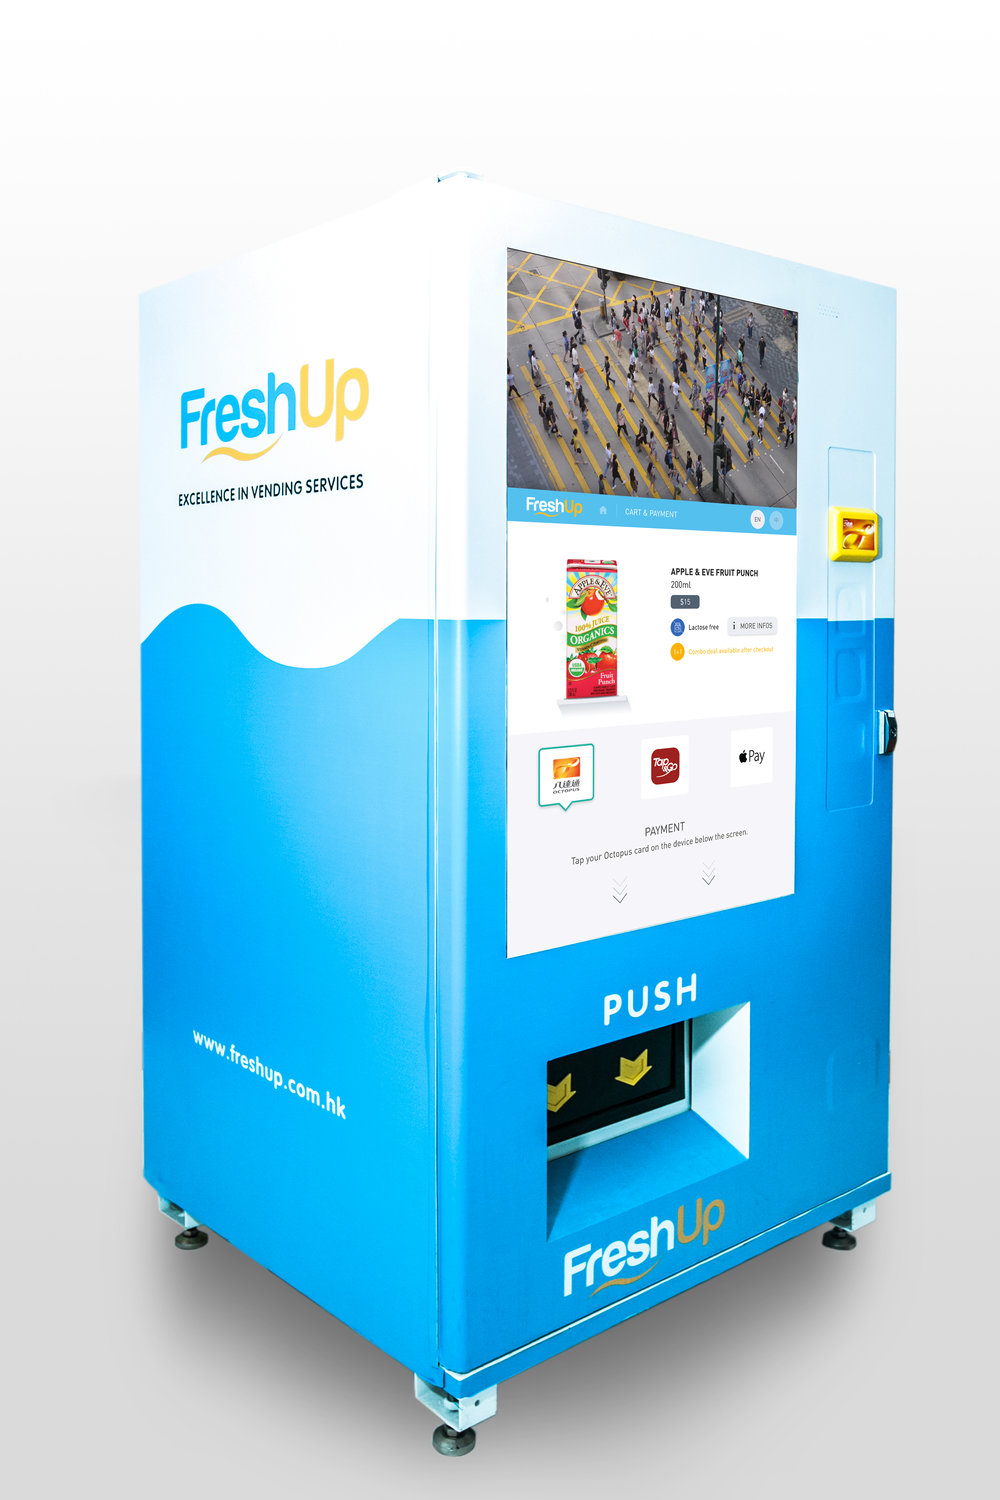 vending machine, FreshUp, LCD, snacks, beverages